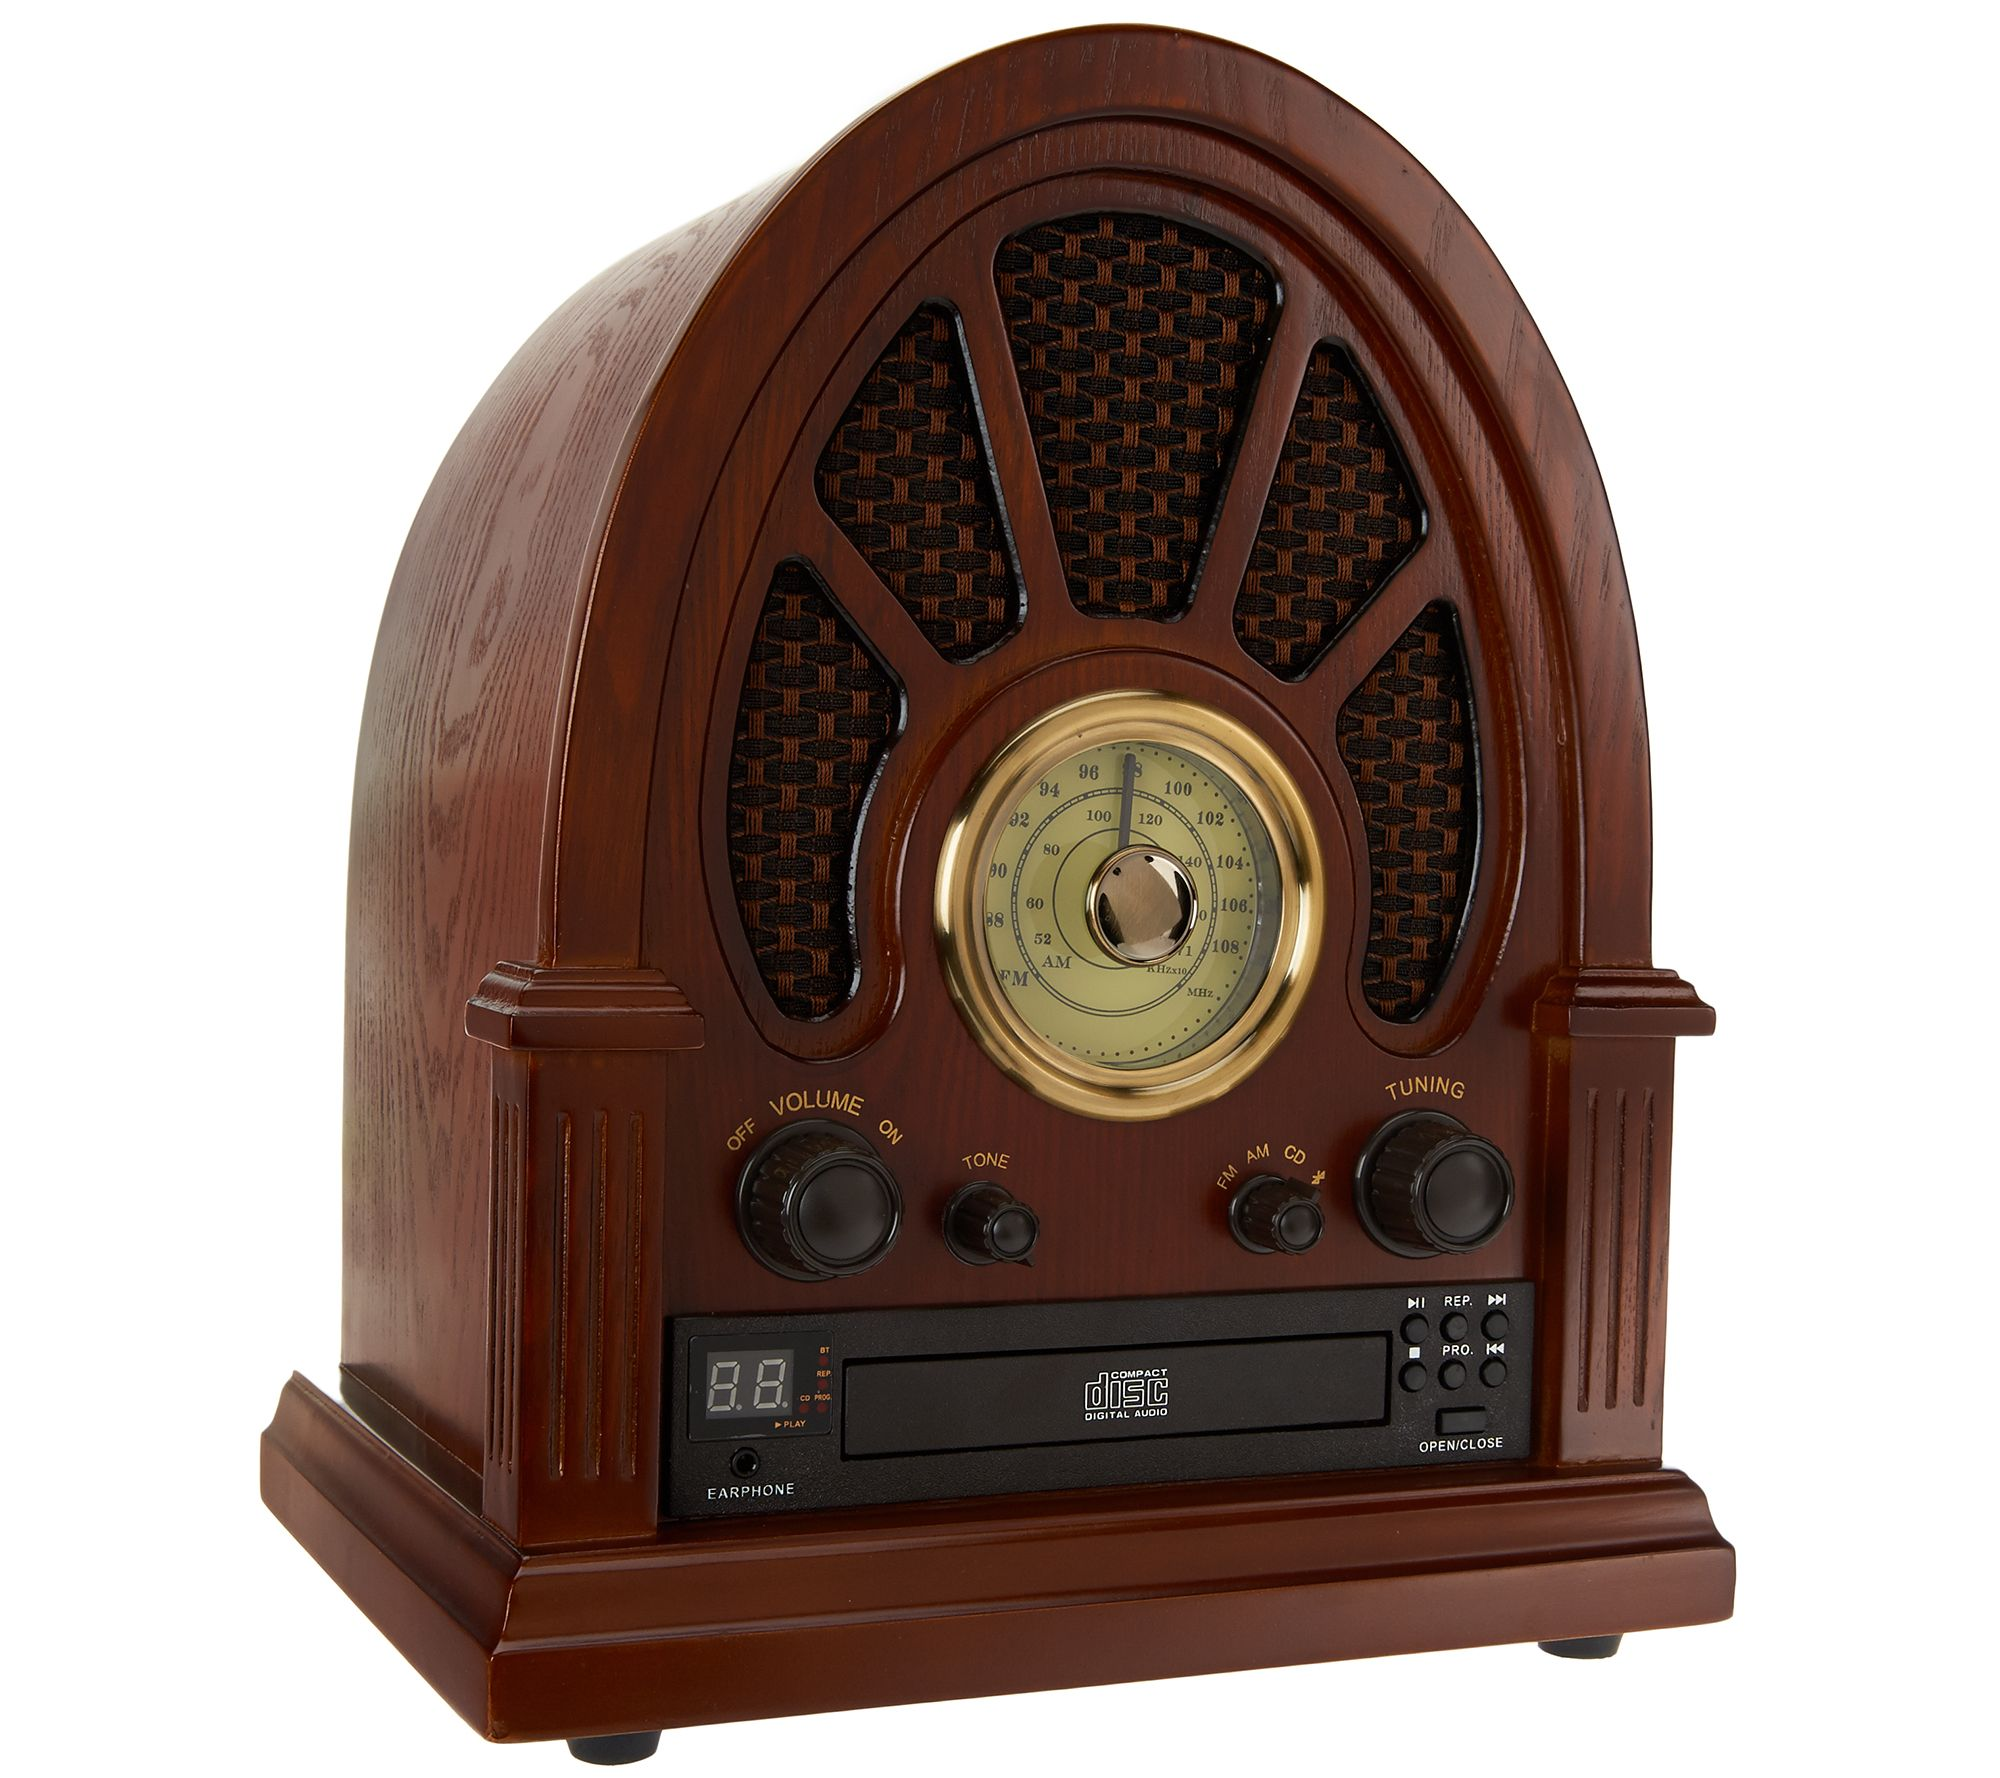 Vintage Wooden Radio w/ CD Player, AM/FM Radio & Bluetooth